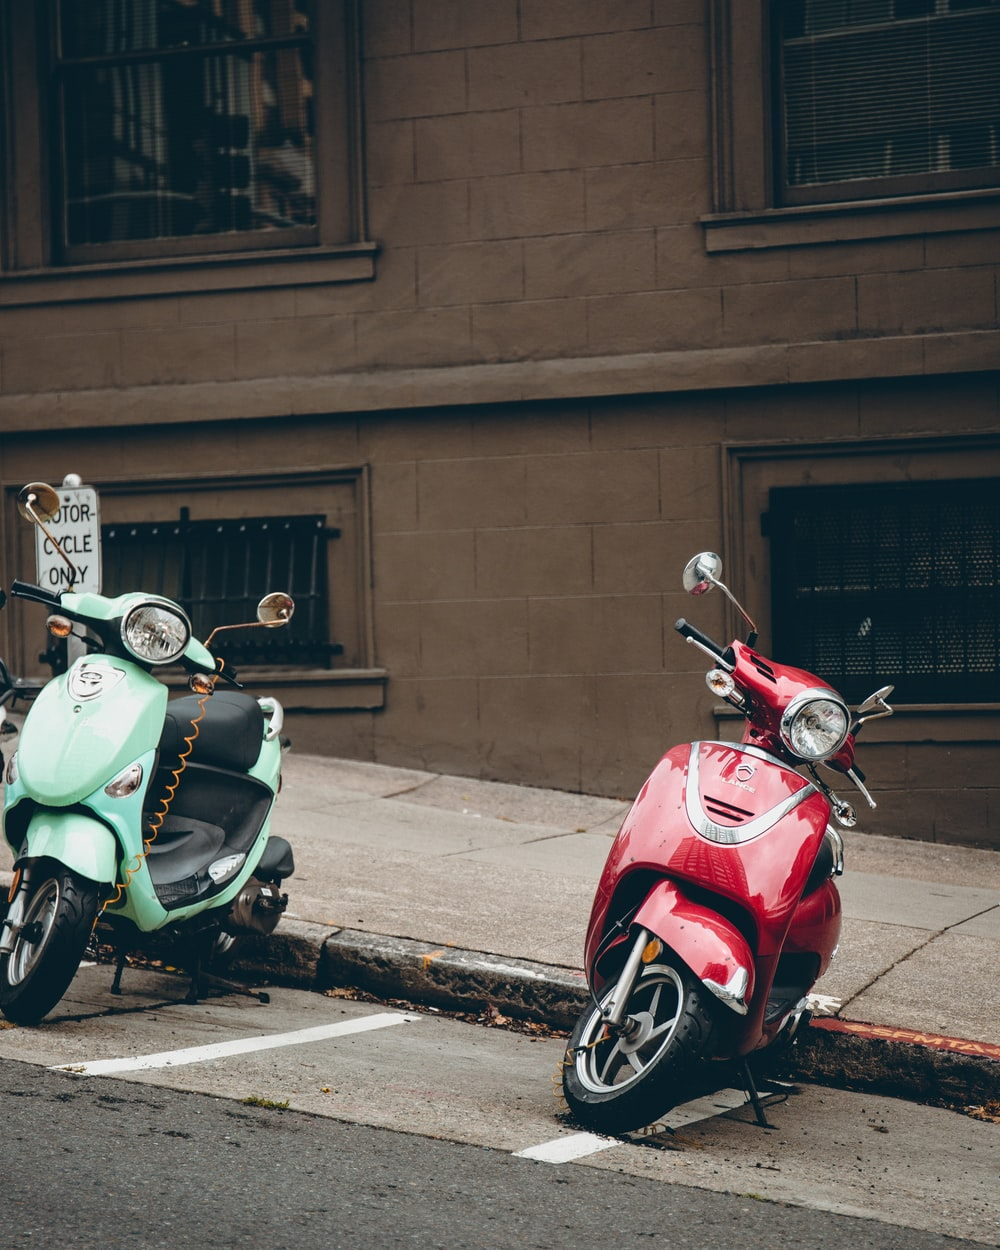 two green and red motor scooters parked on road beside building